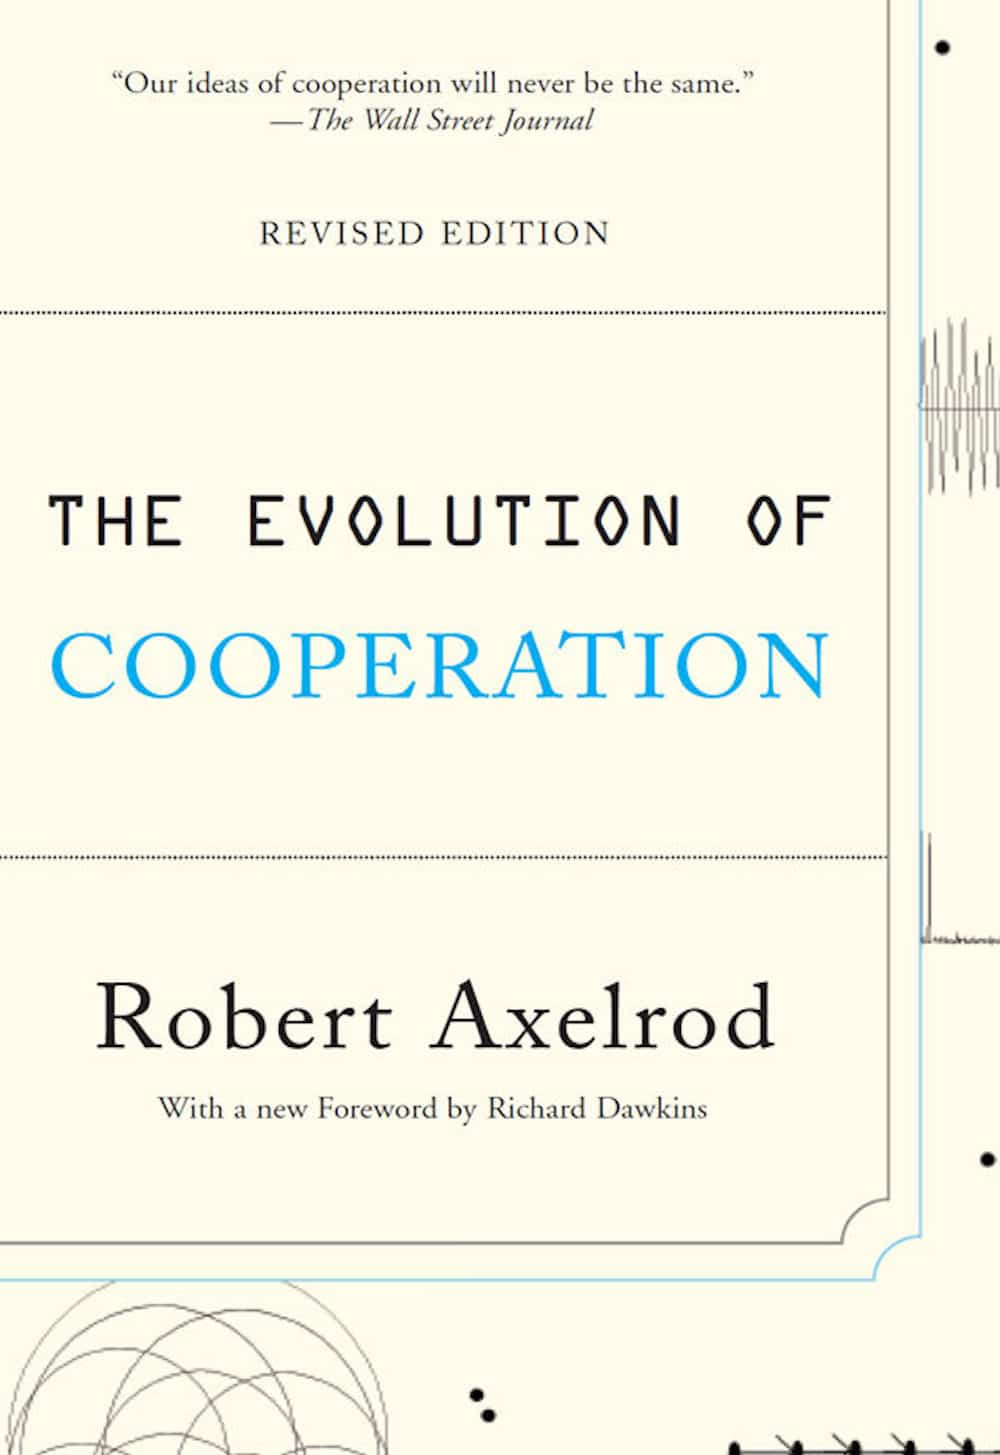 The cover of The Evolution of Cooperation